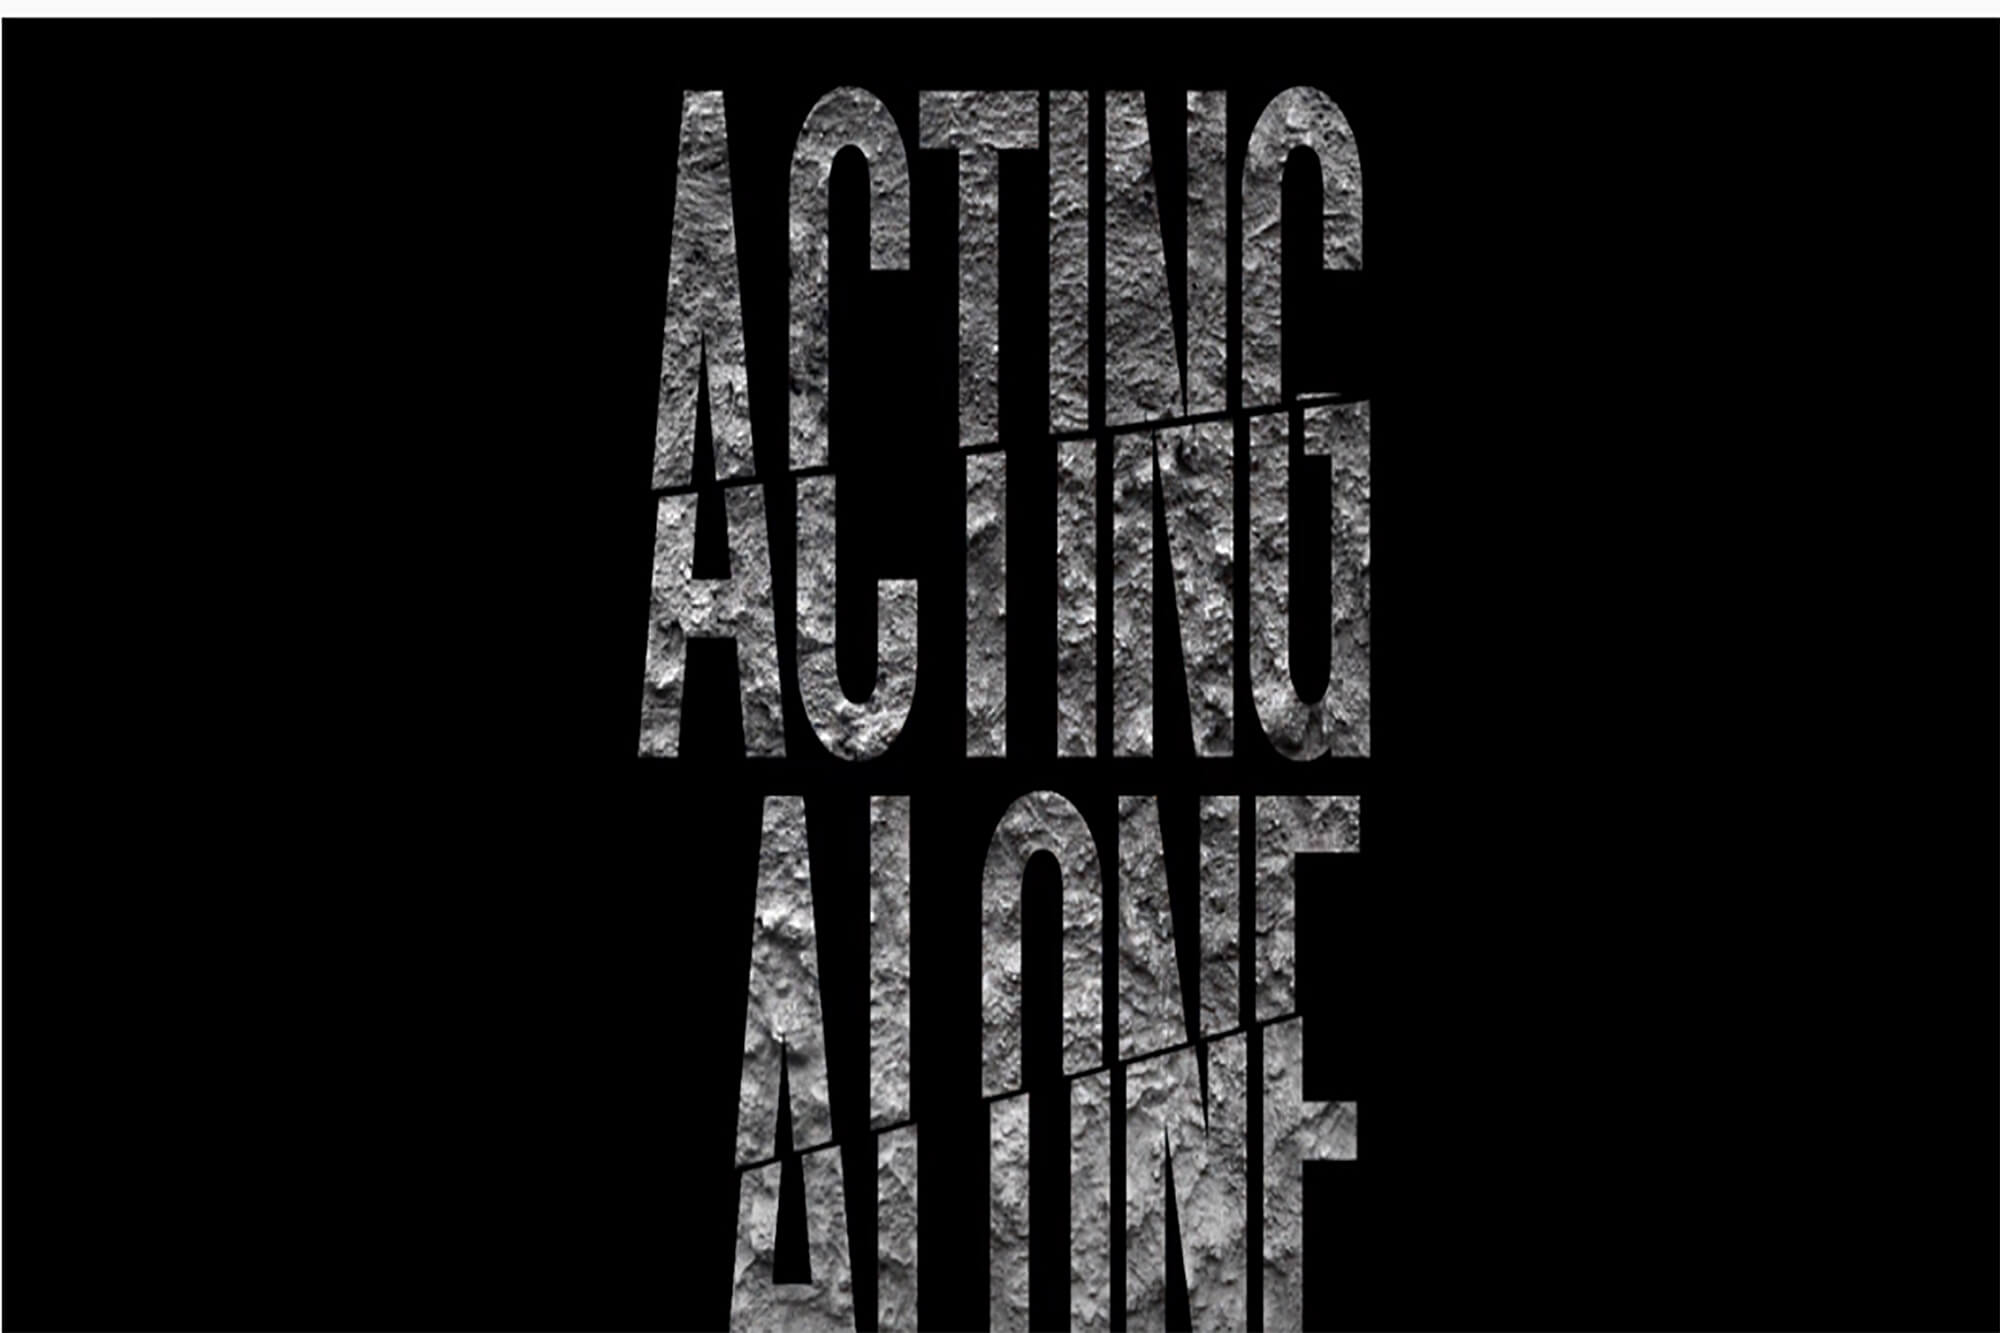 Black background with the words Acting Alone in grey text.